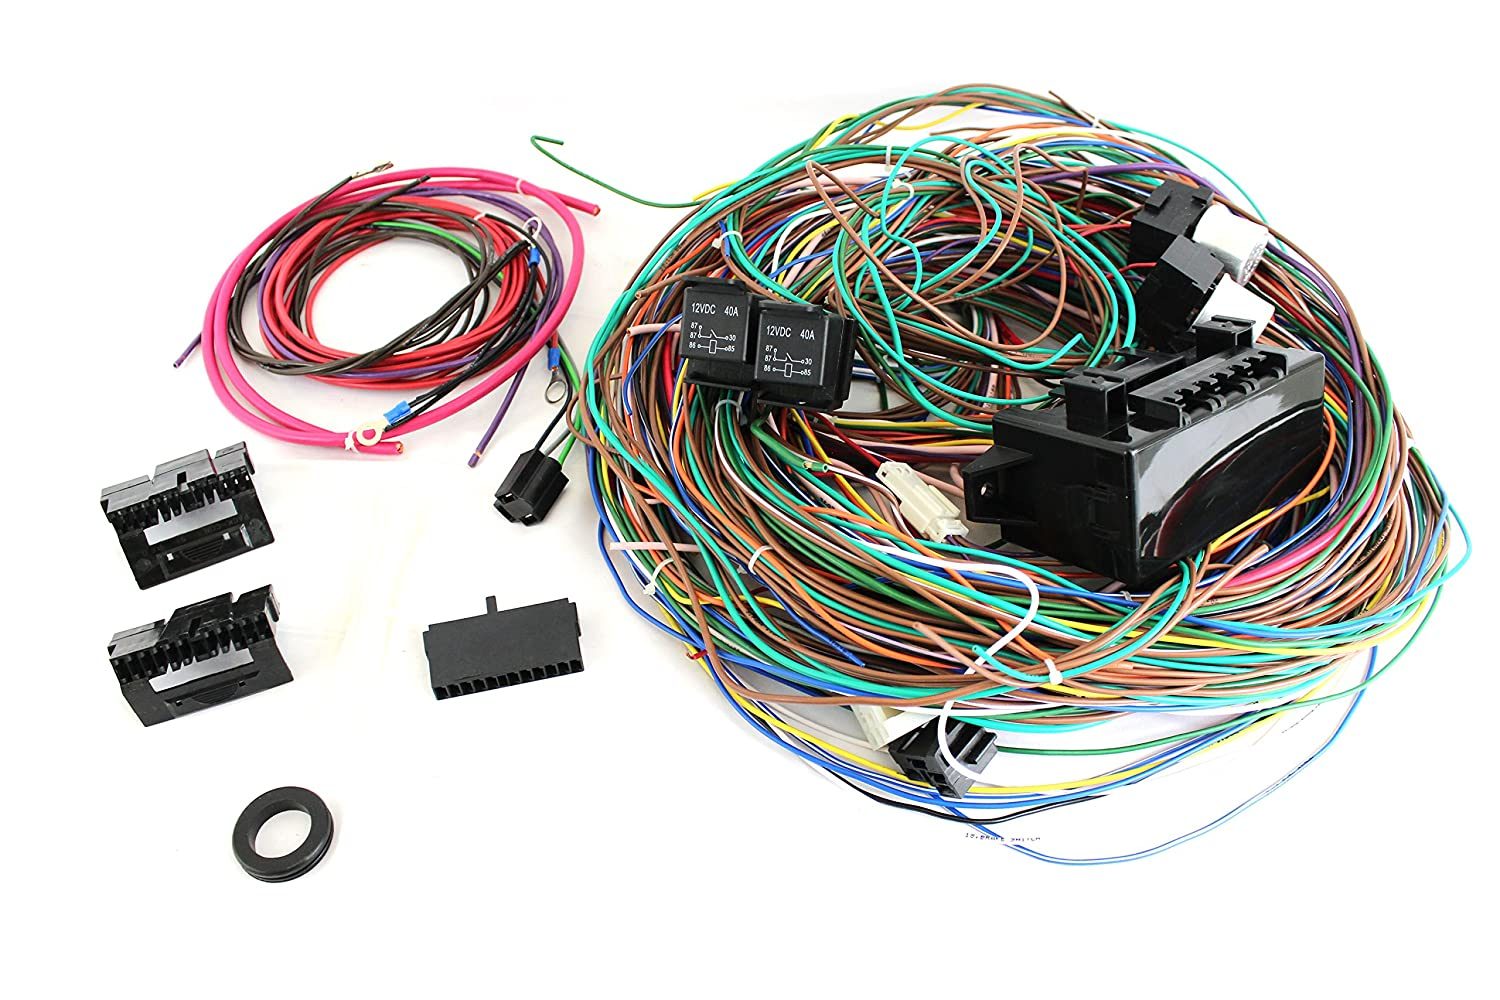 91YoamXFx2L._SL1500_ amazon com 12v 24 circuit 15 fuse street hot rat rod wiring hot rod wiring harness universal at mifinder.co